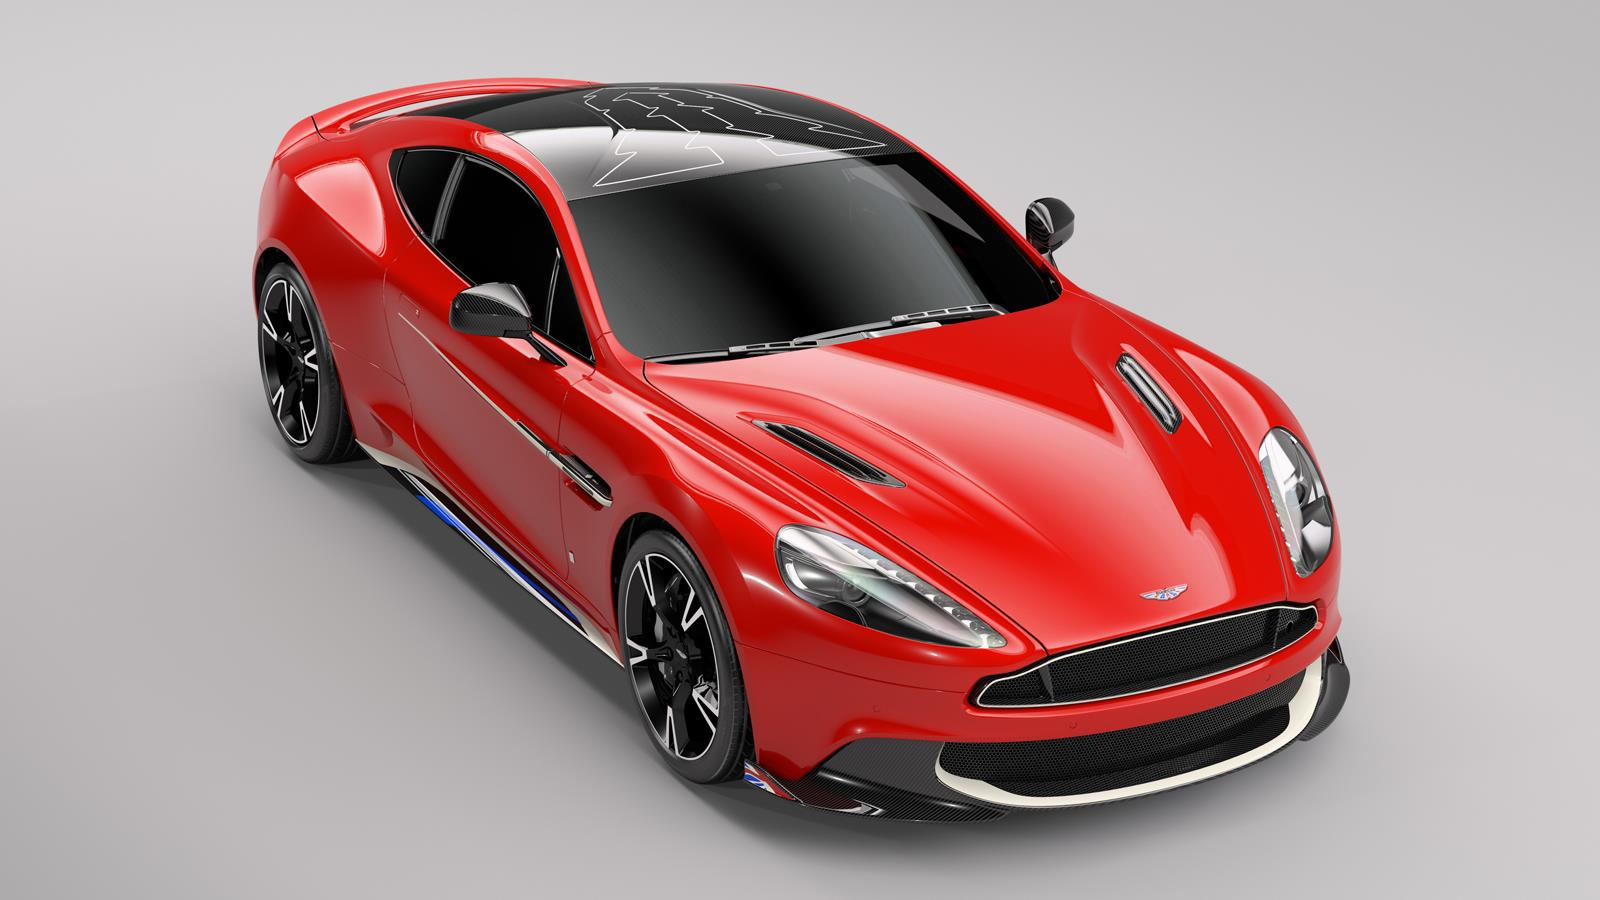 Aston Martin Vanquish S gets special Red Arrows edition